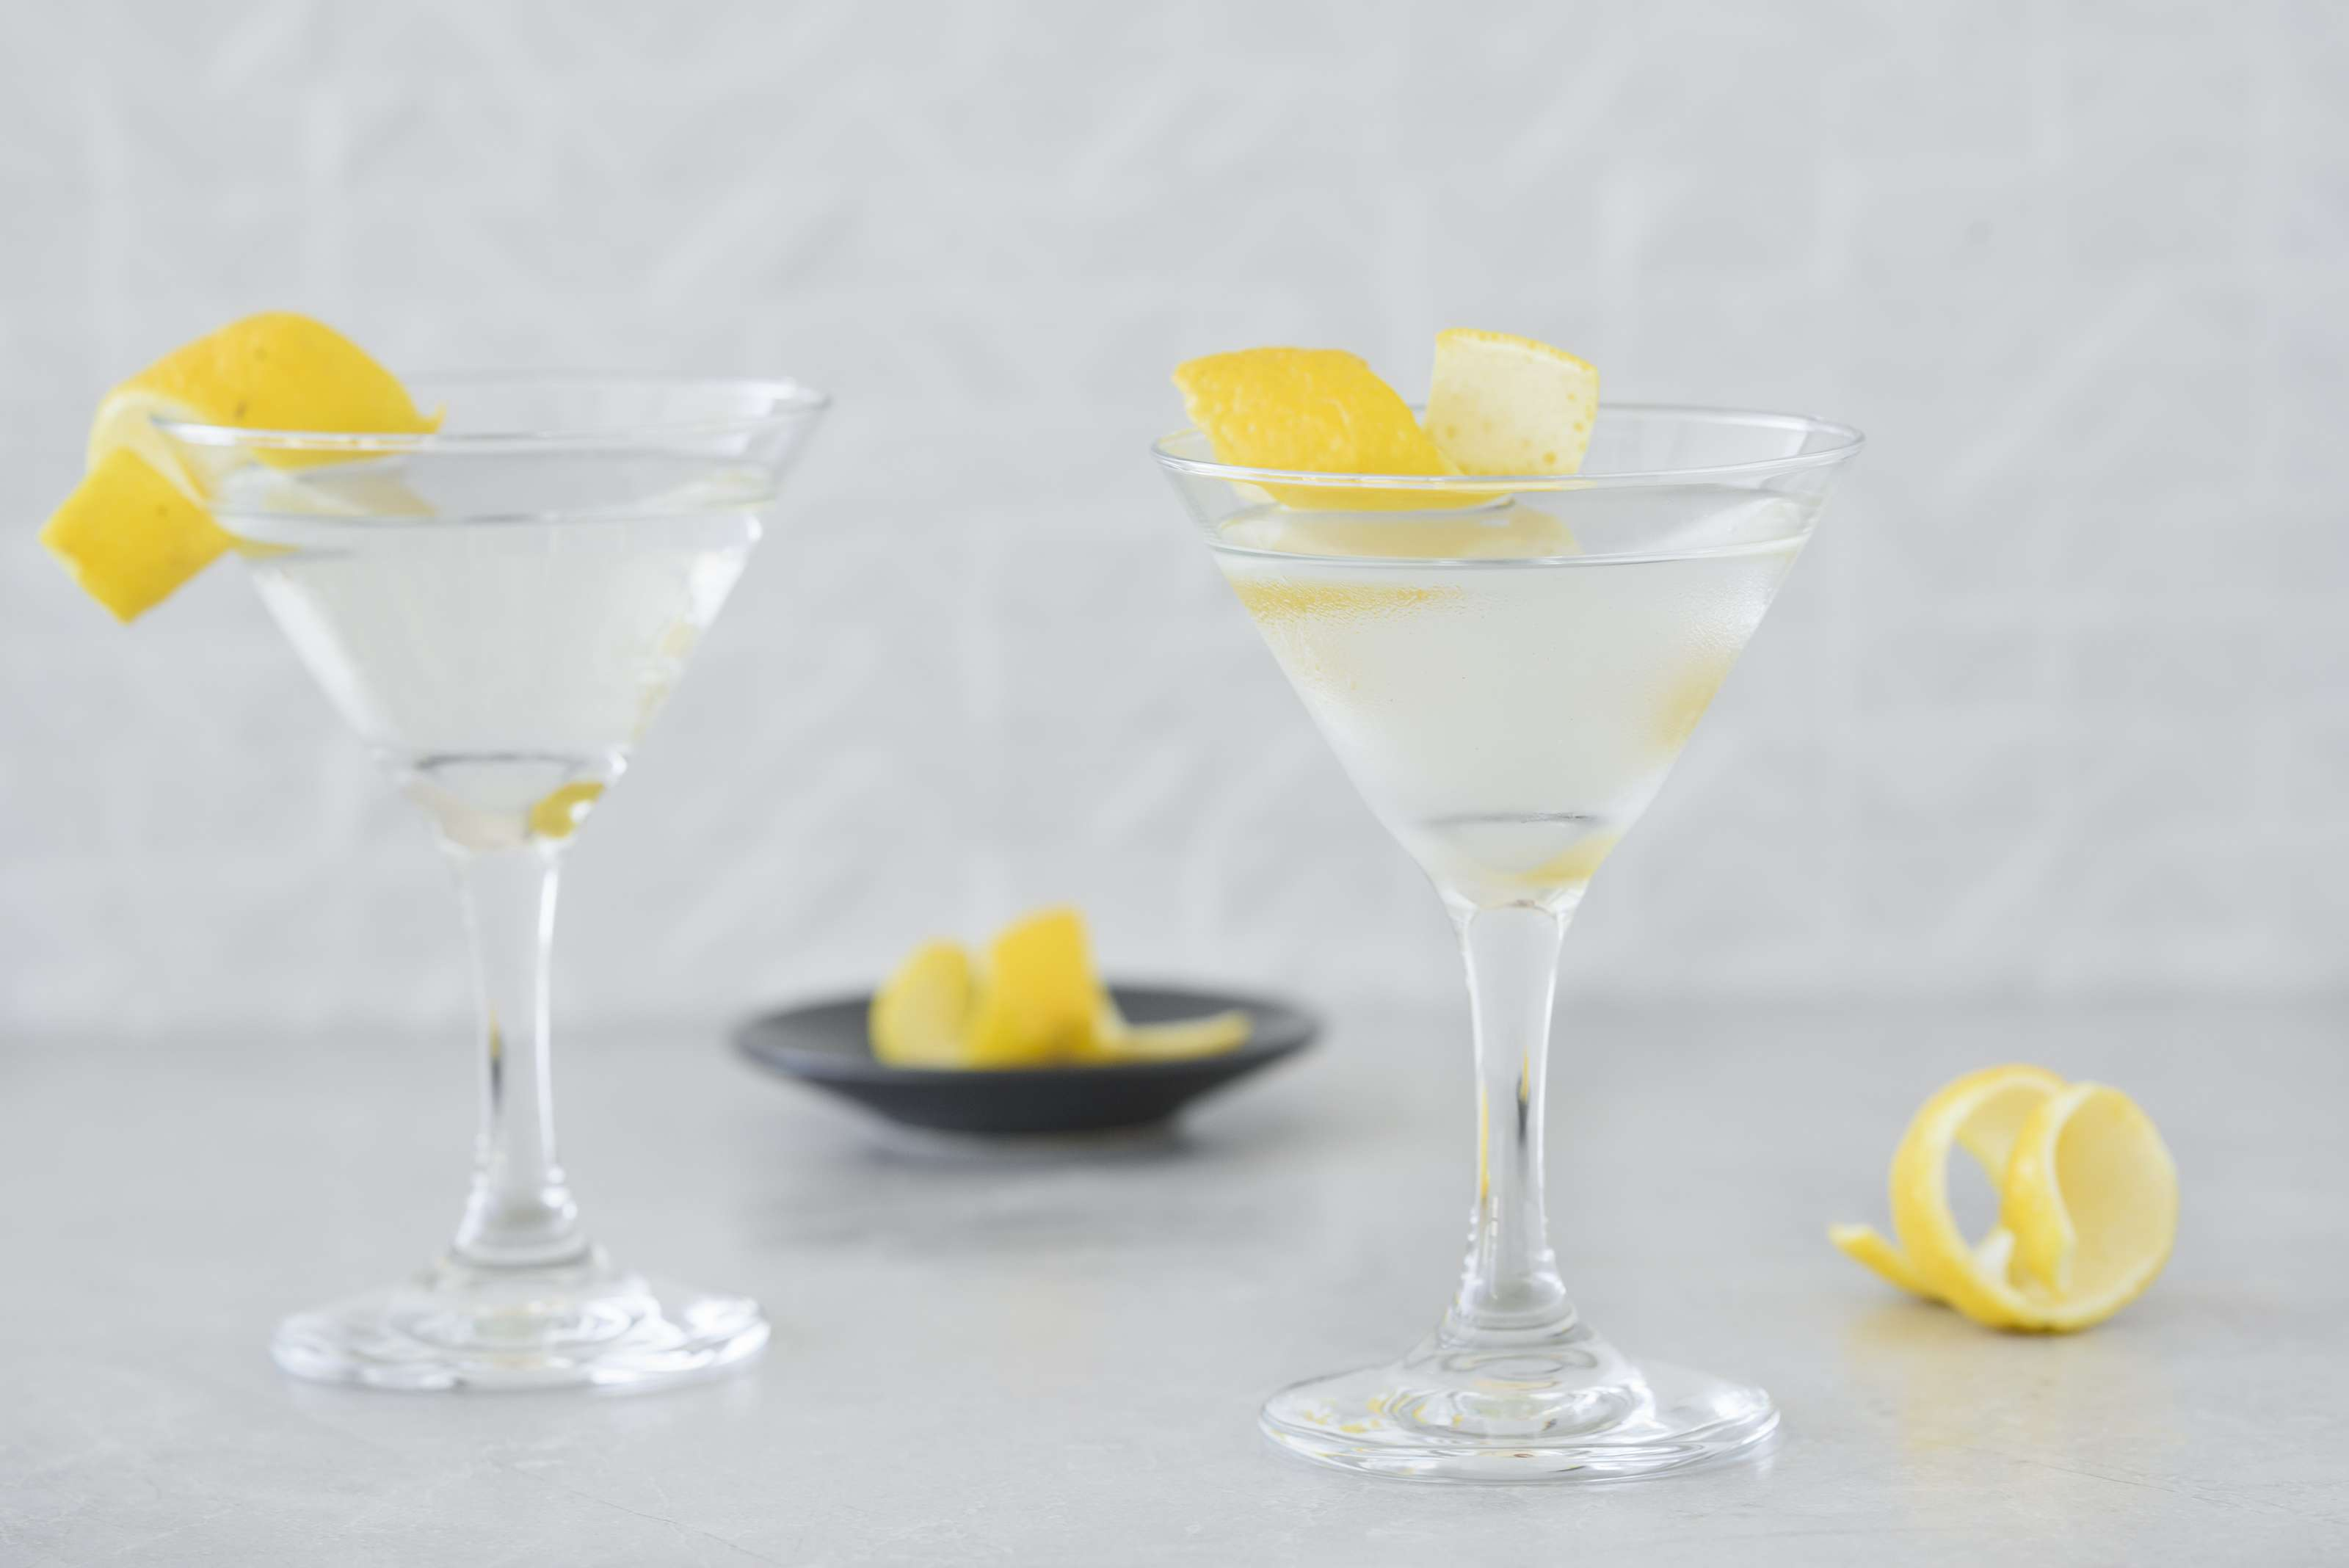 Garnish with lemon